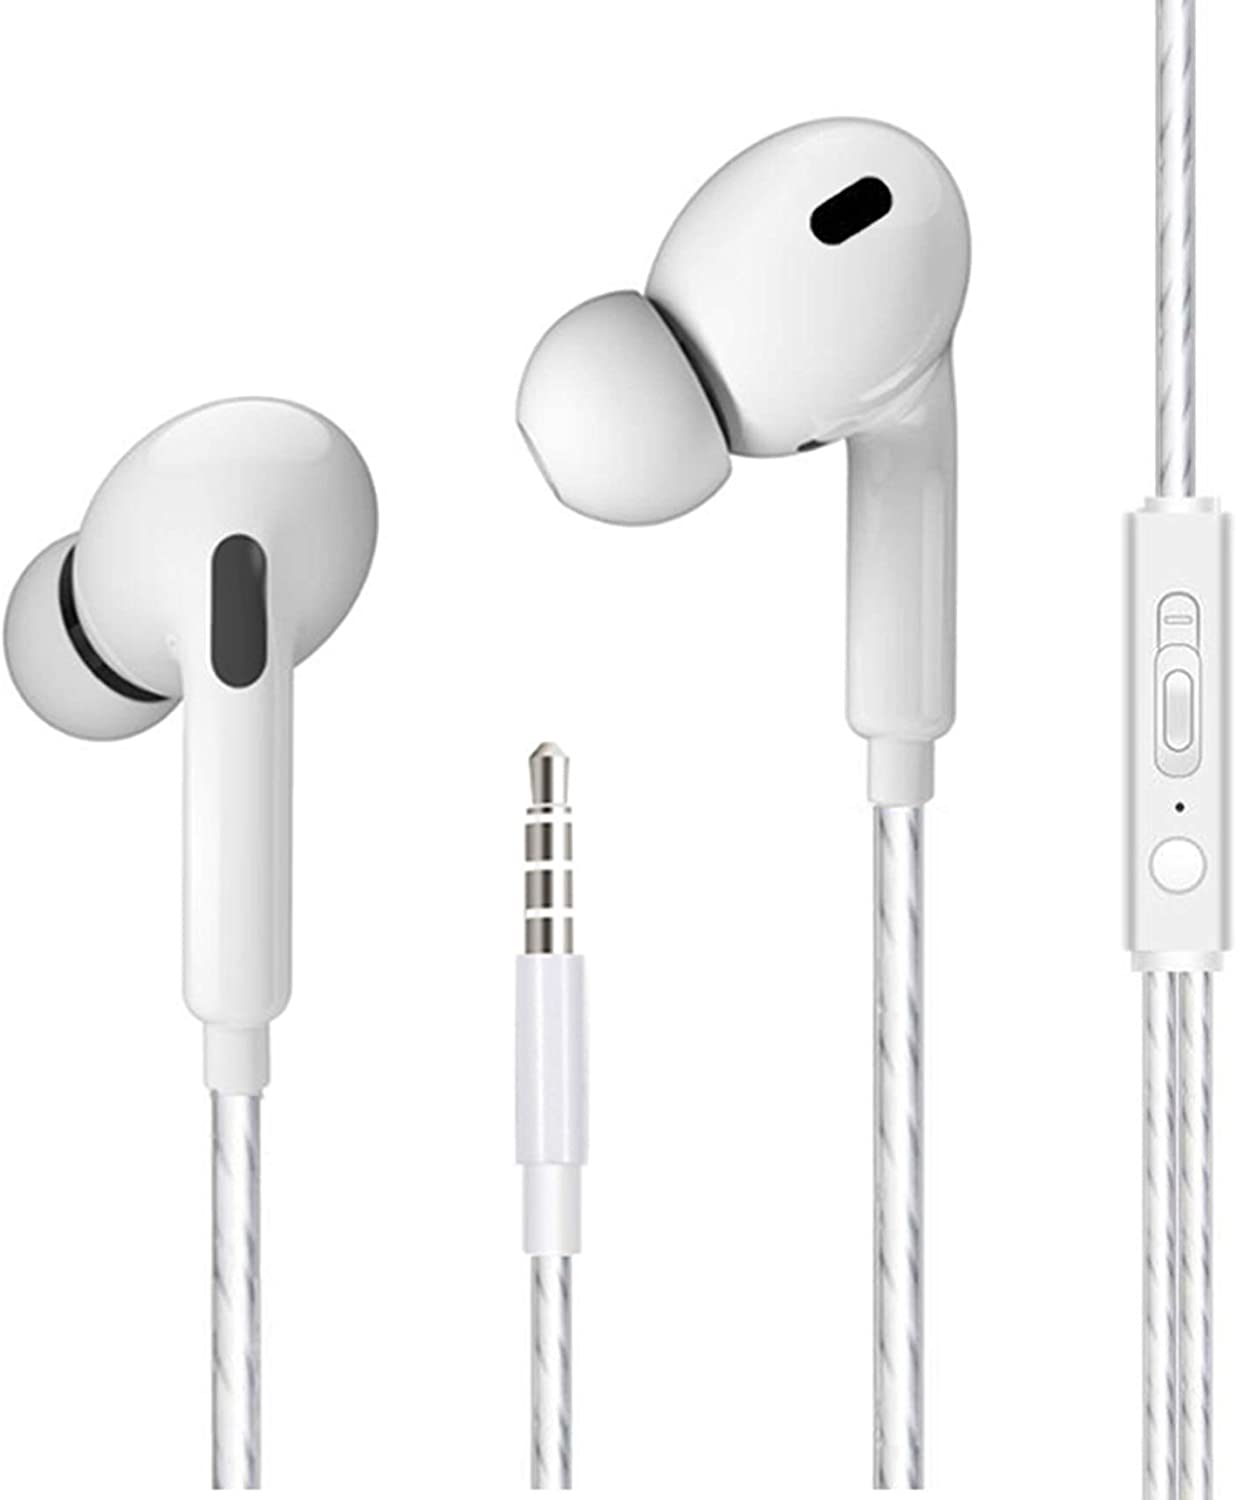 2020 Upgrade Version iPhone Earphones with 3.5mm Headphone Plug MFi Certified with Mic +Call+Volume Control Passive Noise Reduction Earbuds Compatible with iPhone 6s/6plus/6/5s,Android,PC Etc.